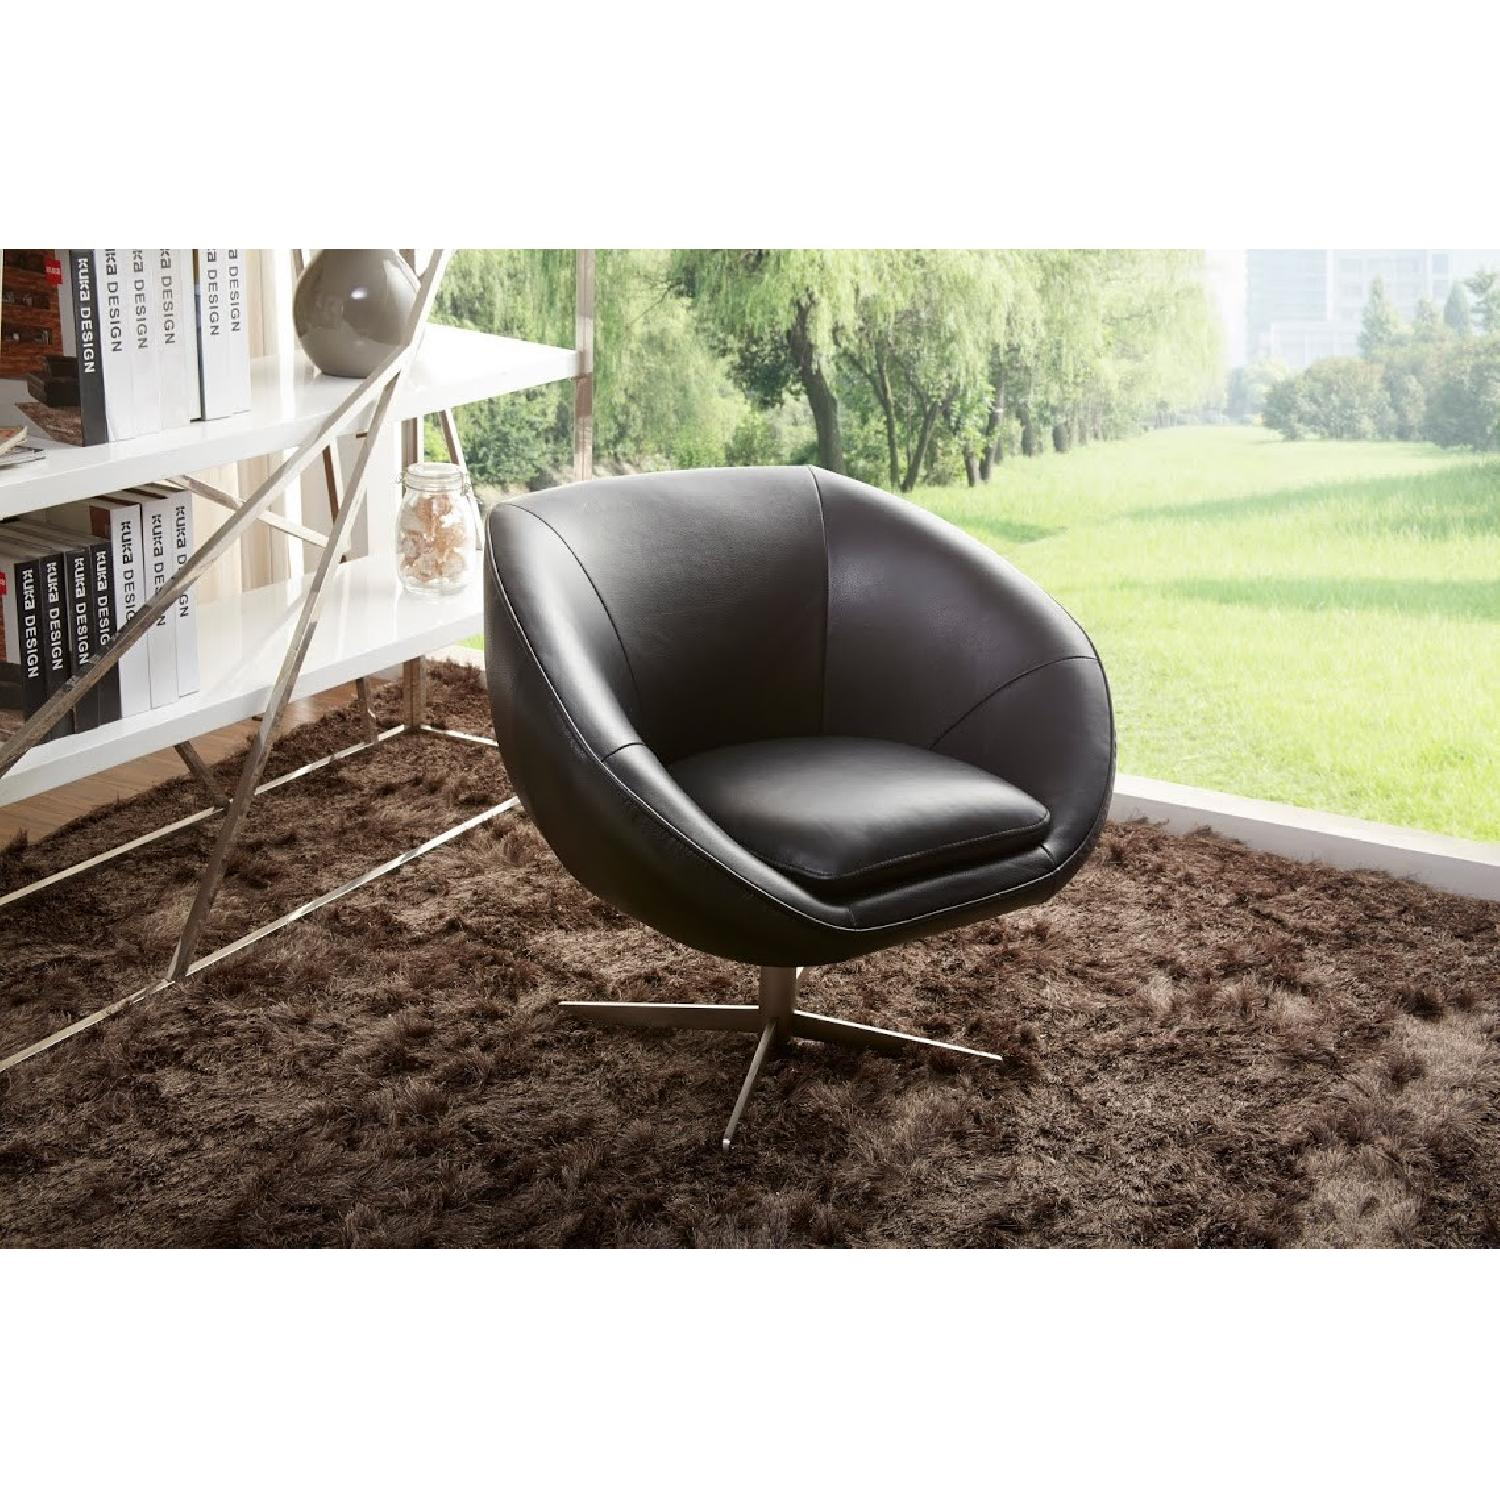 Modern Swivel Accent Chair in Black Premium Leather w/ Matching Faux Leather & Chrome Base - image-4